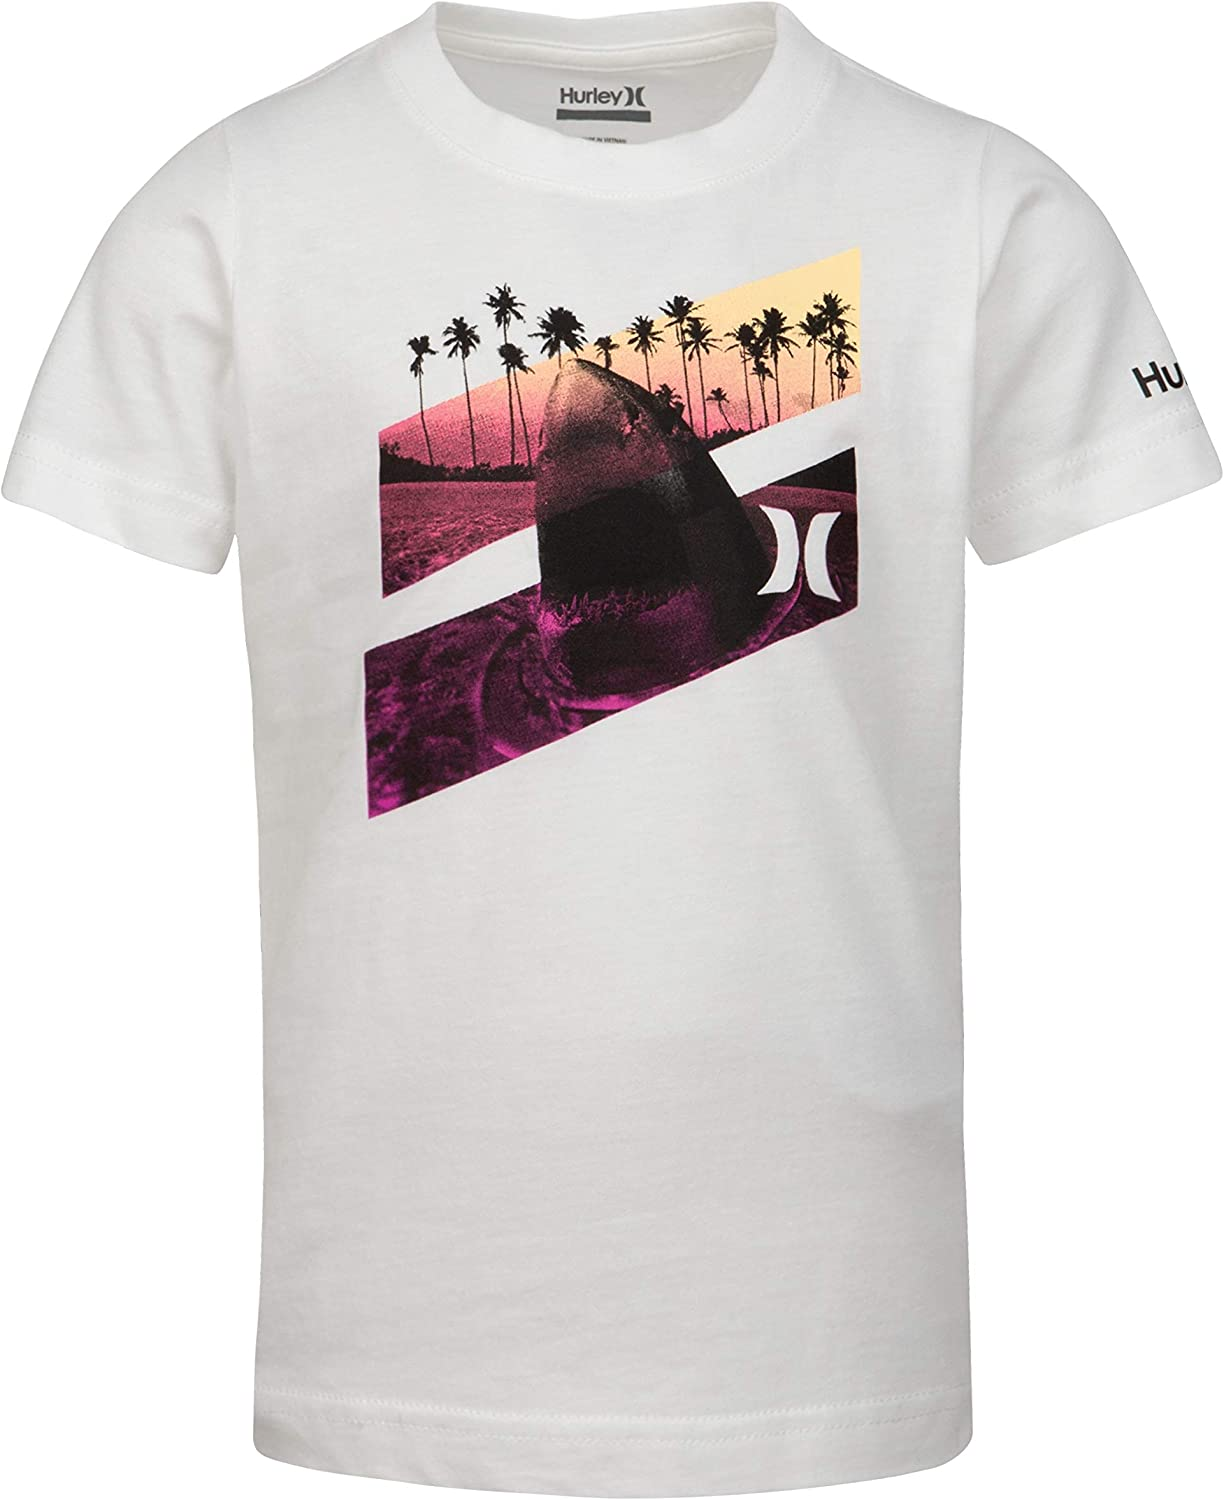 Hurley Boys' Graphic T-Shirt